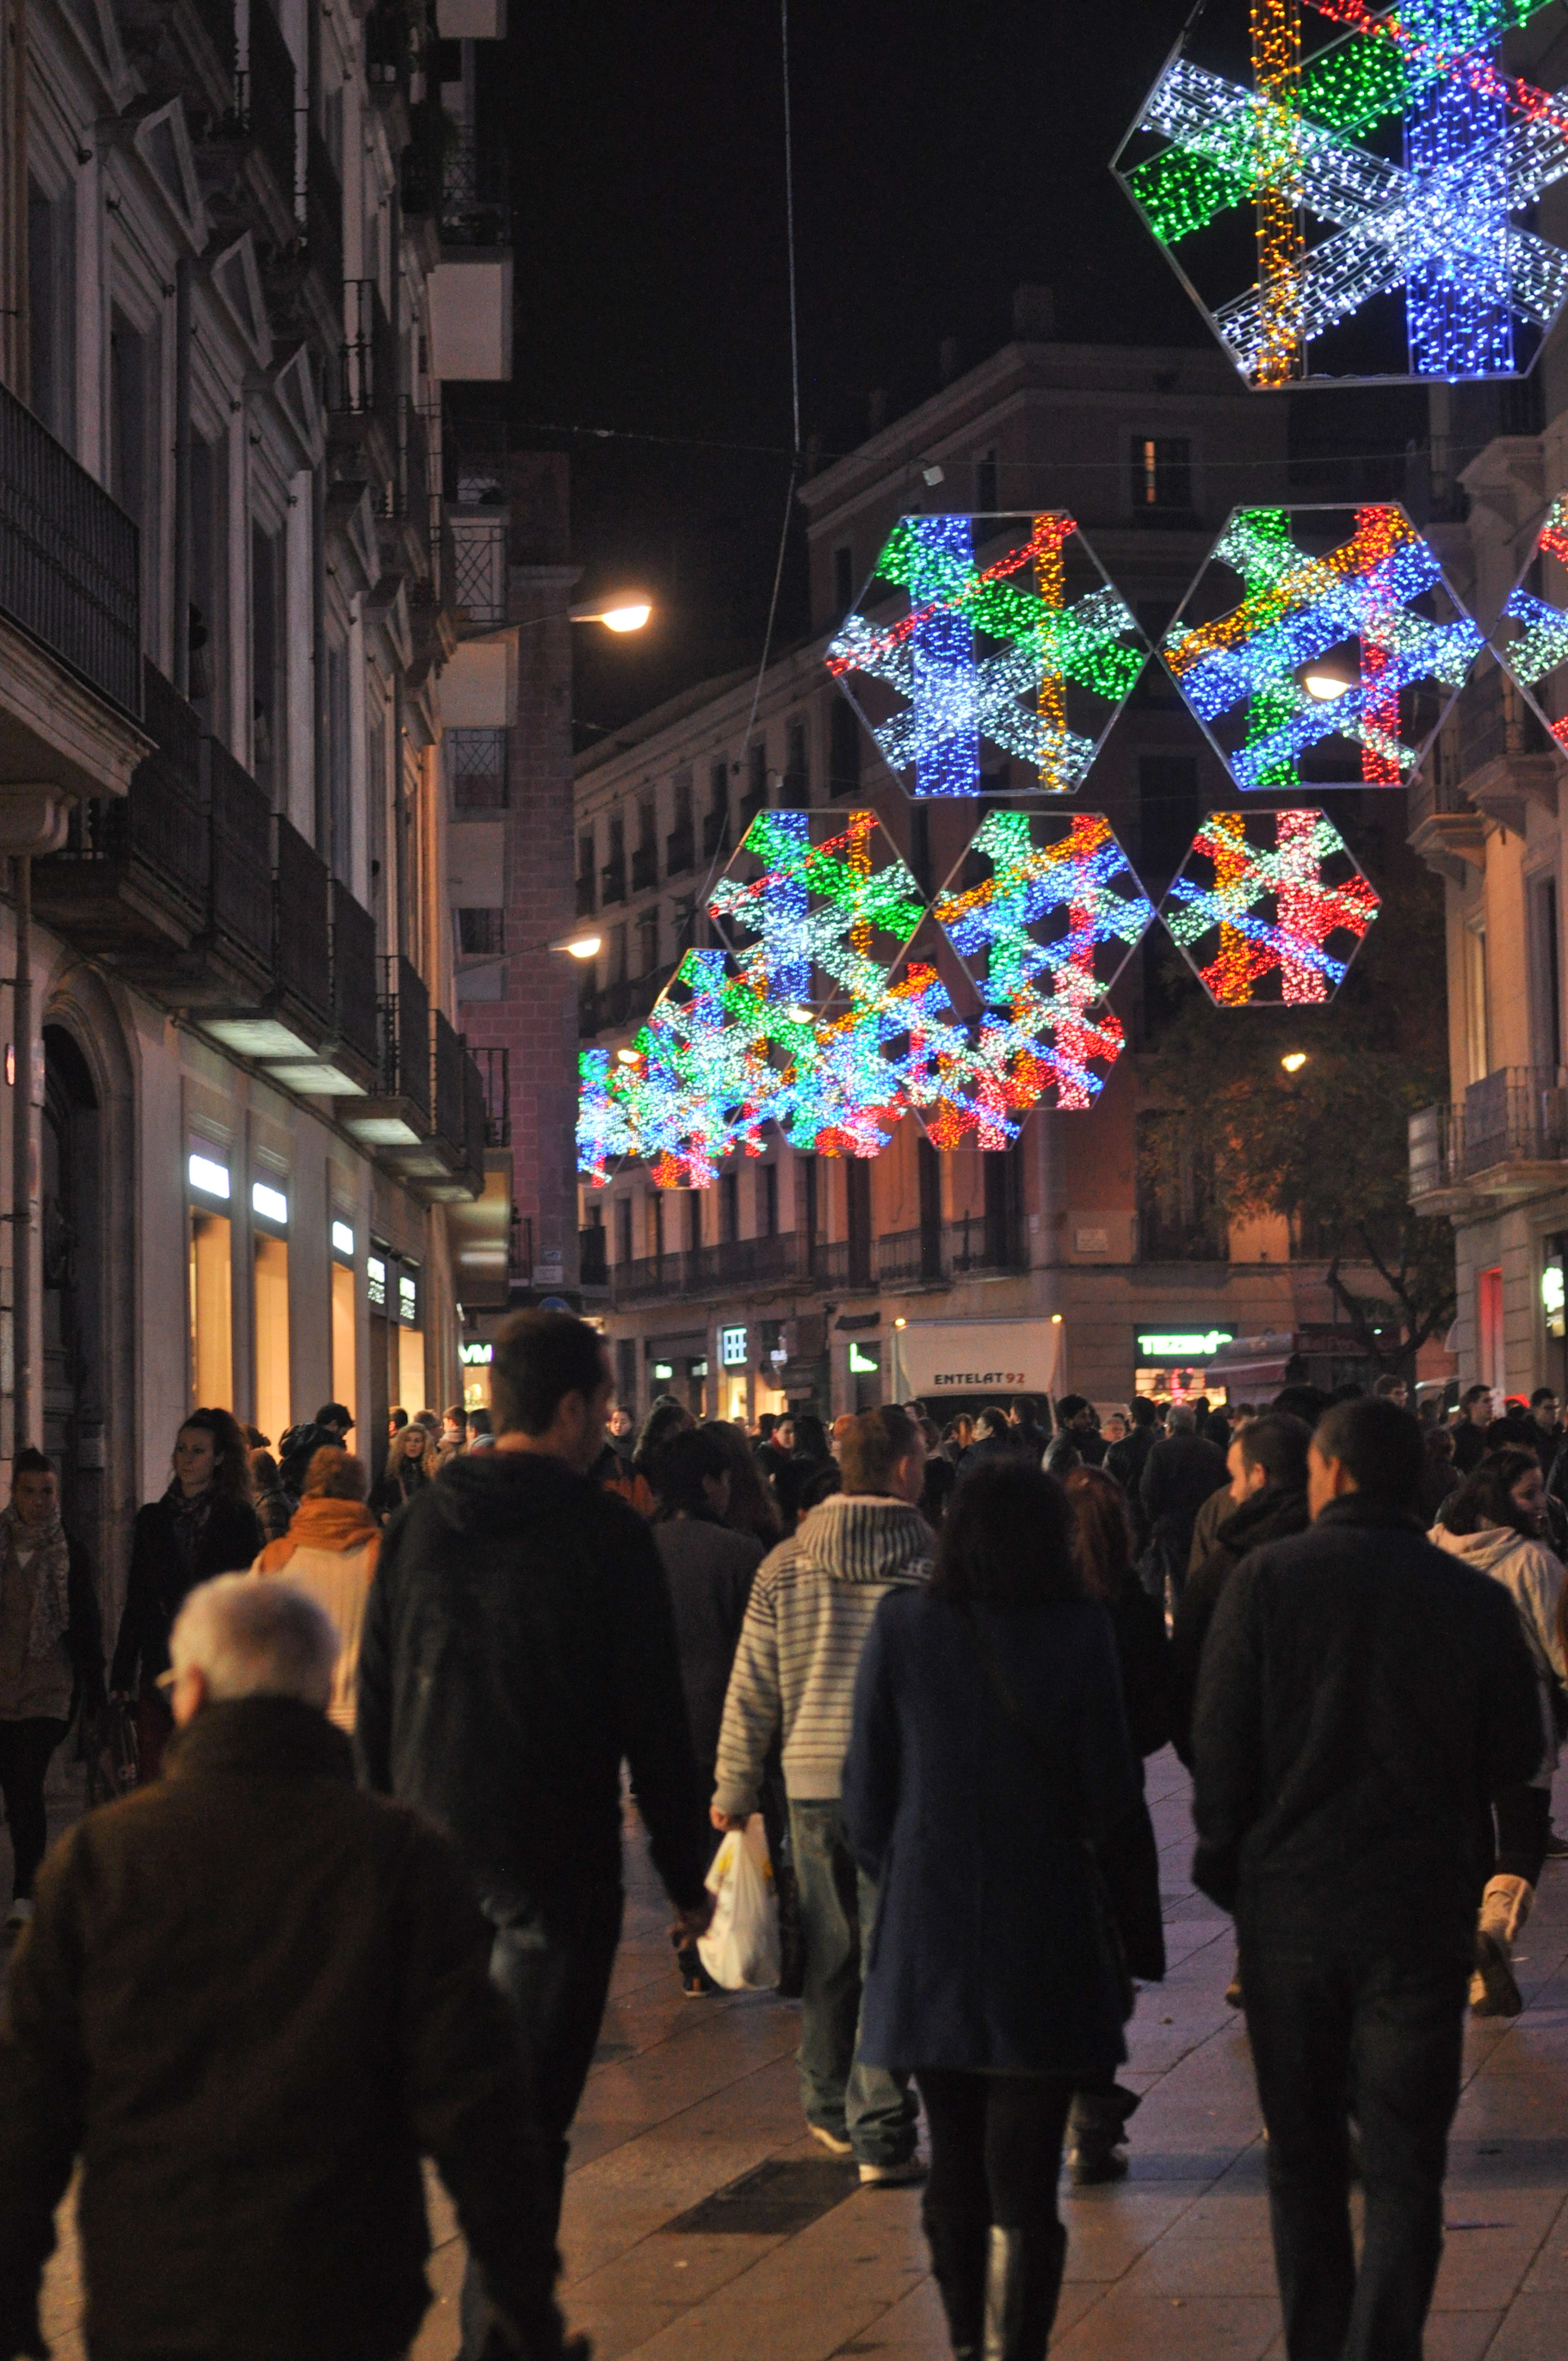 Barcelona Street decorated for Christmas.